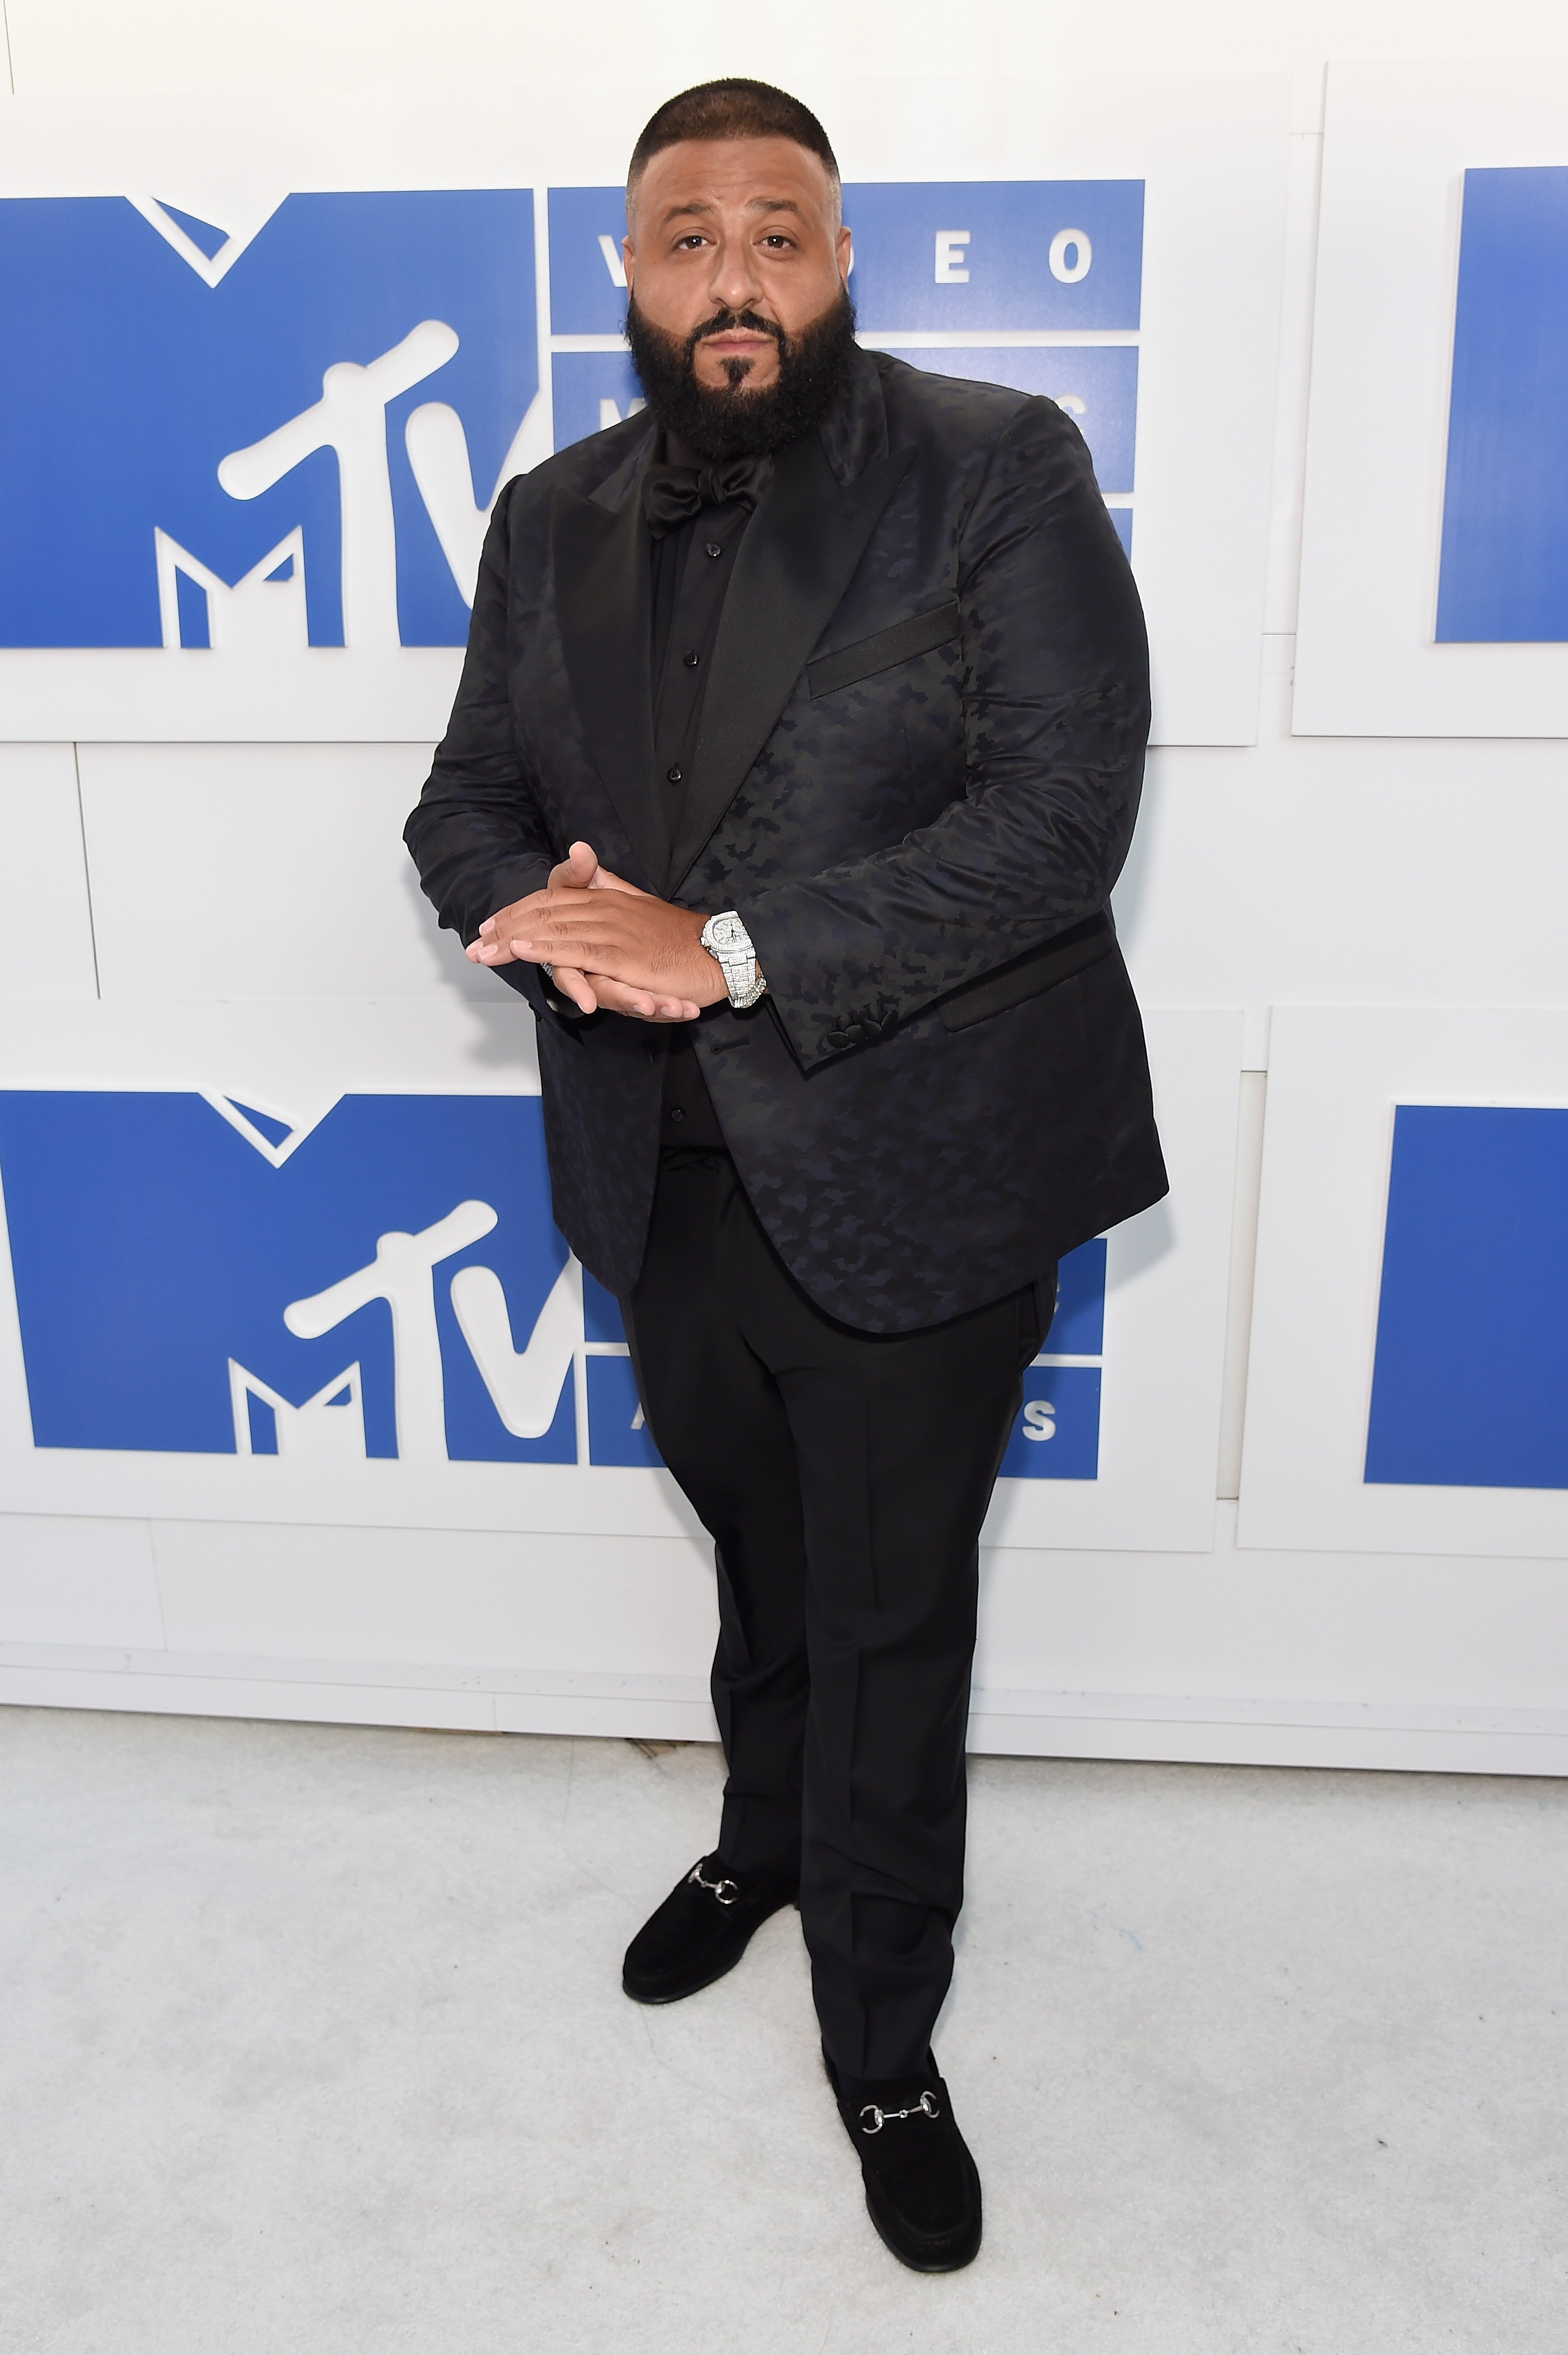 DJ Khaled attends the 2016 MTV Video Music Awards at Madison Square Garden on Aug. 28, 2016 in New York City.